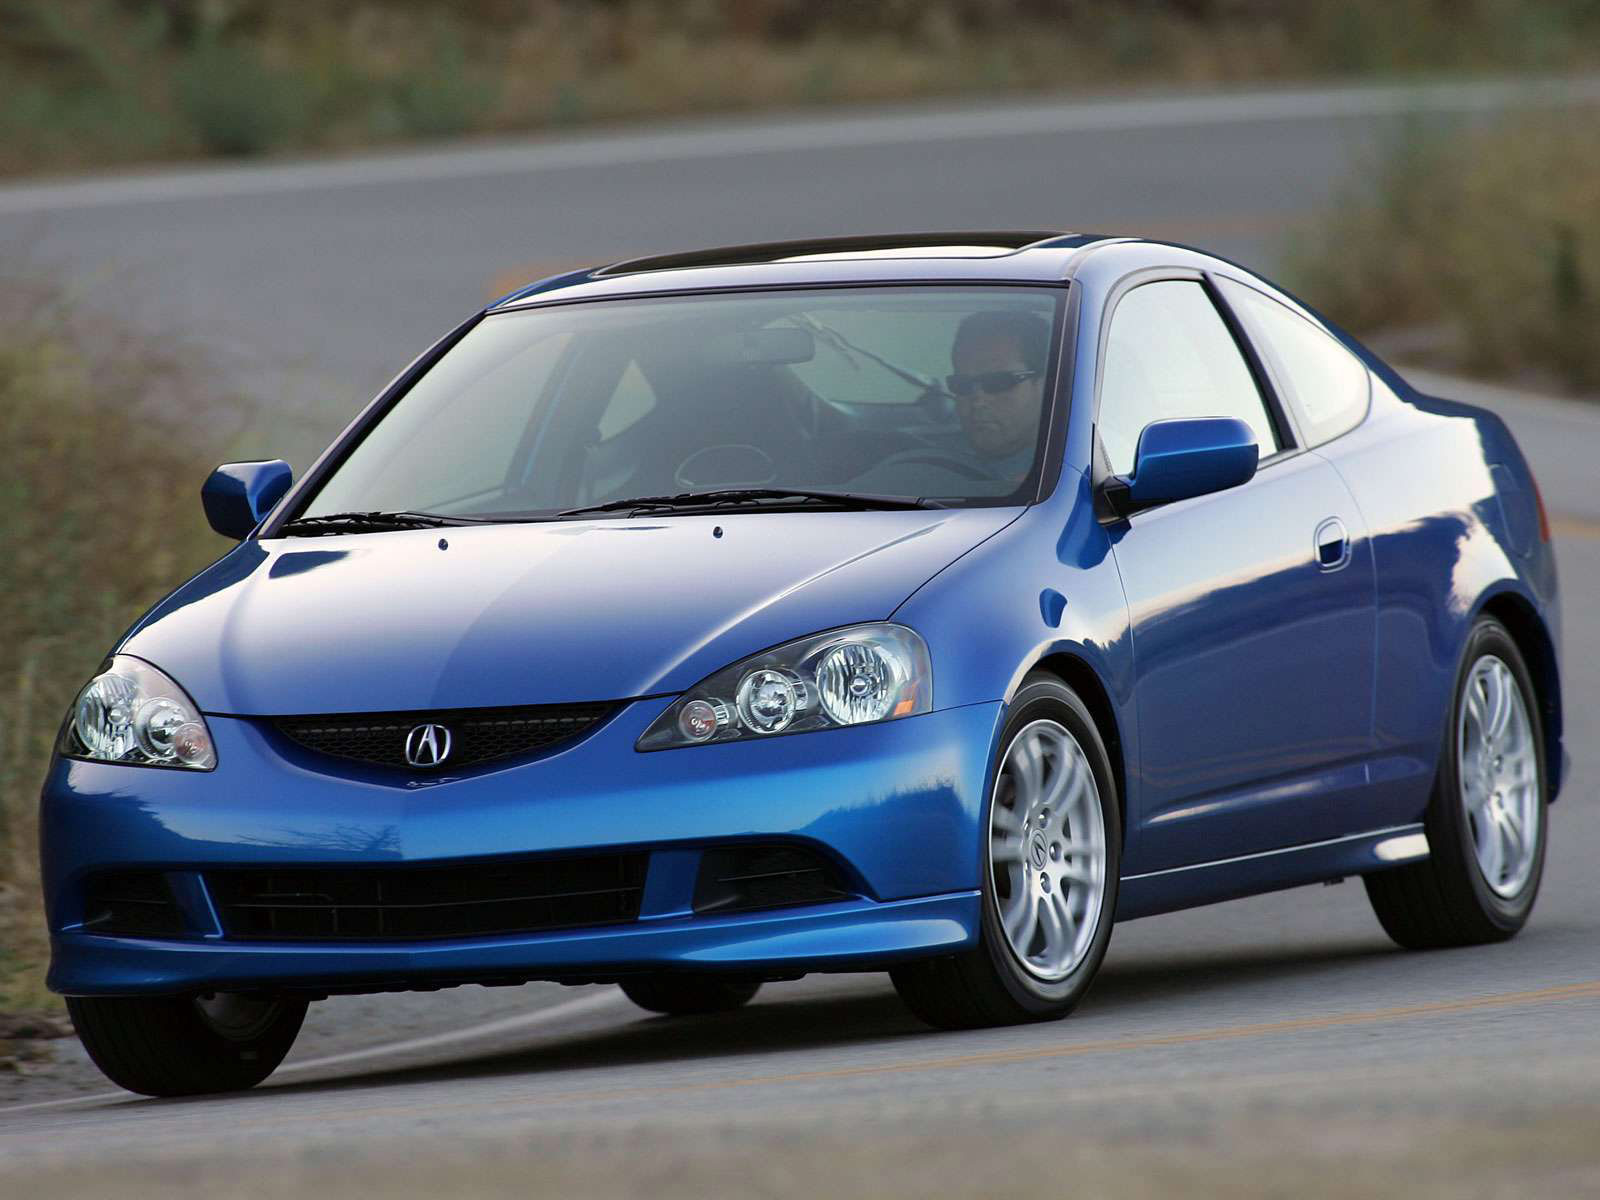 2005 acura rsx japanese car photos. Black Bedroom Furniture Sets. Home Design Ideas